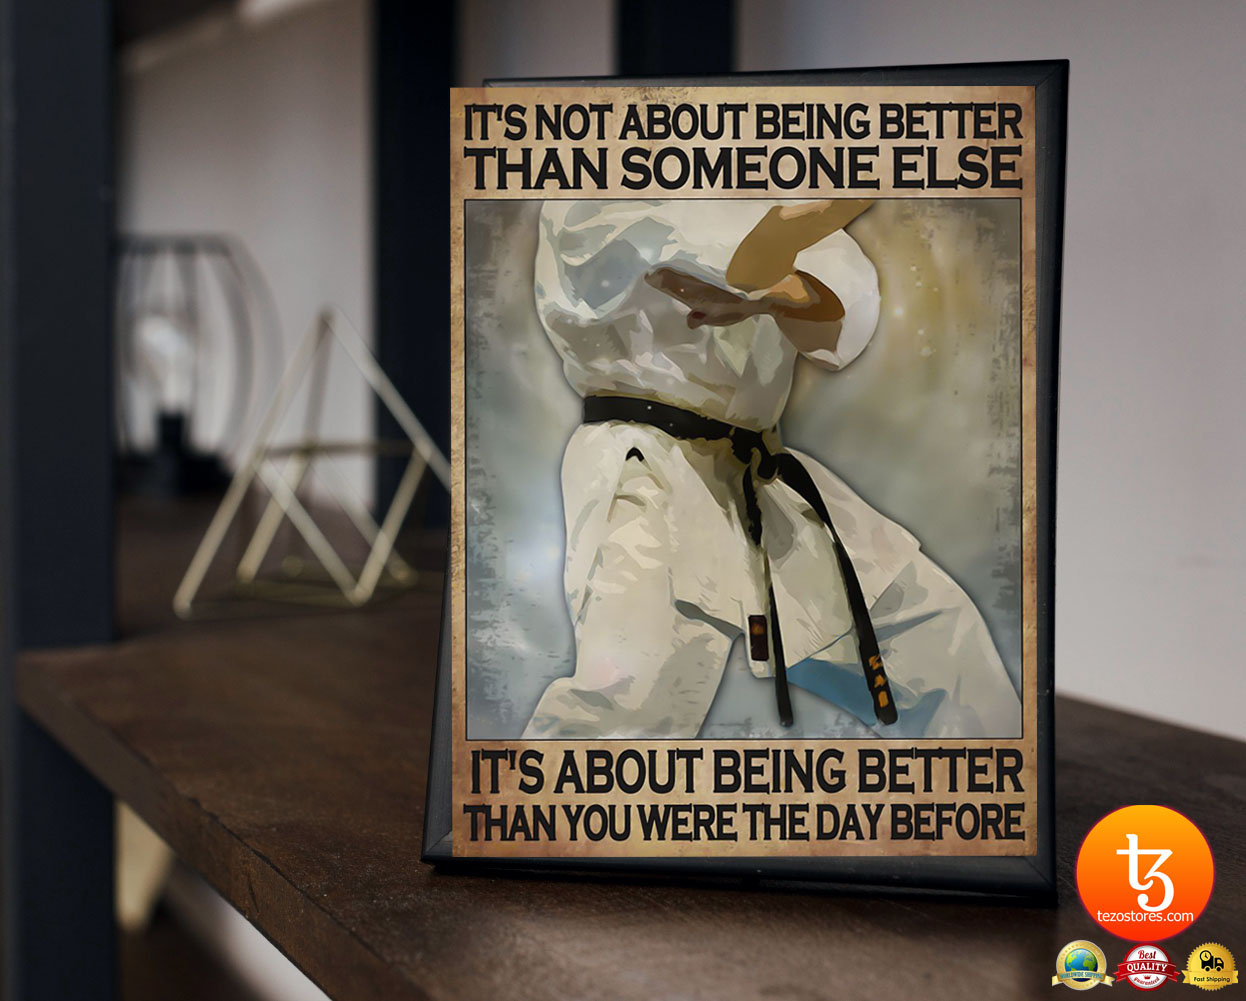 Osu Karate It's not about being better than someone else poster 19